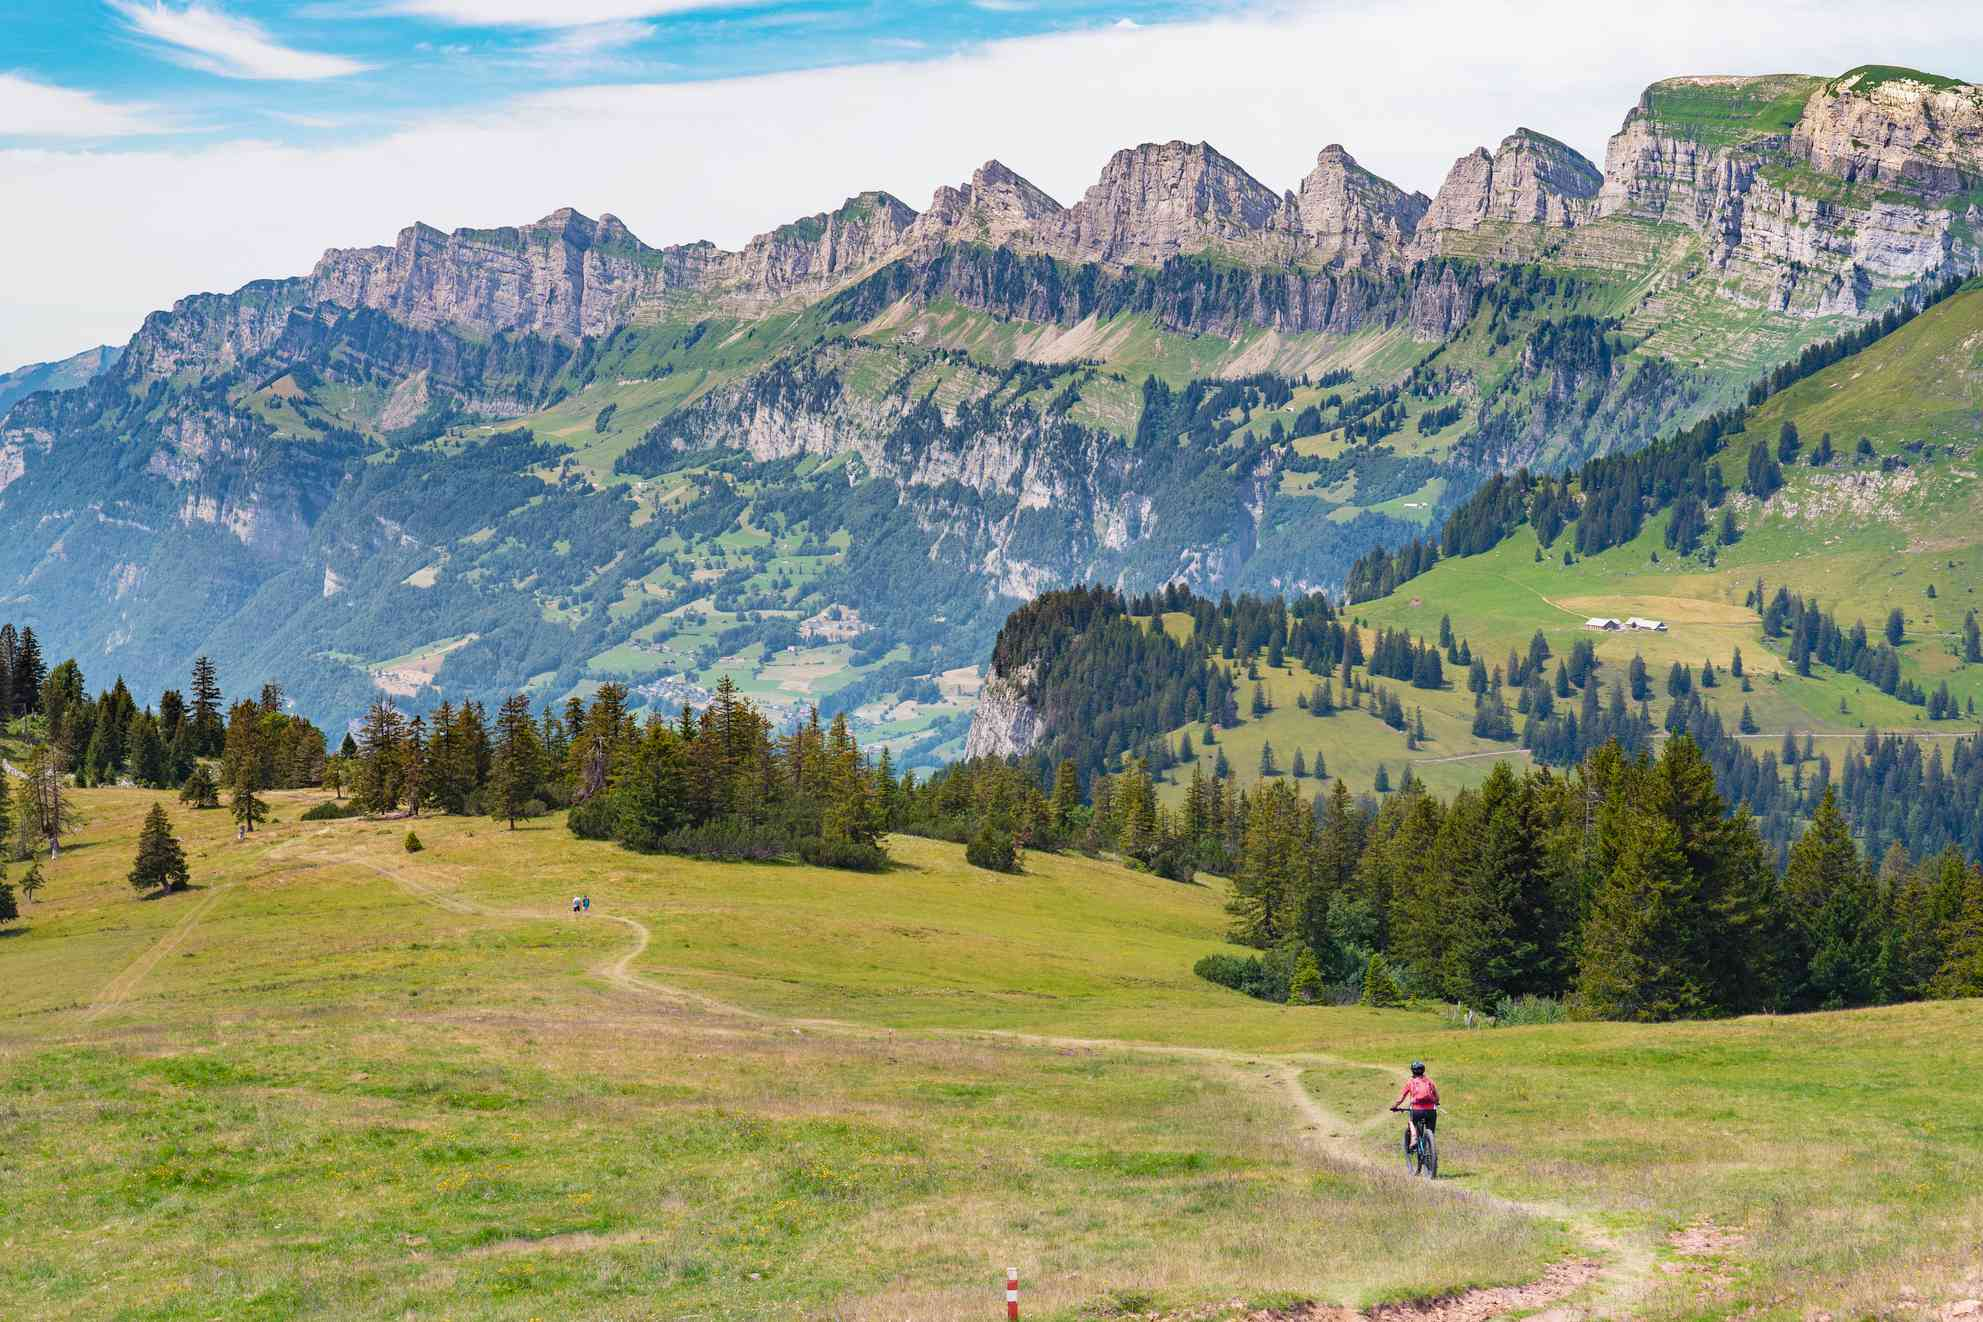 A woman on a mountain bike descends a trail in the Alps